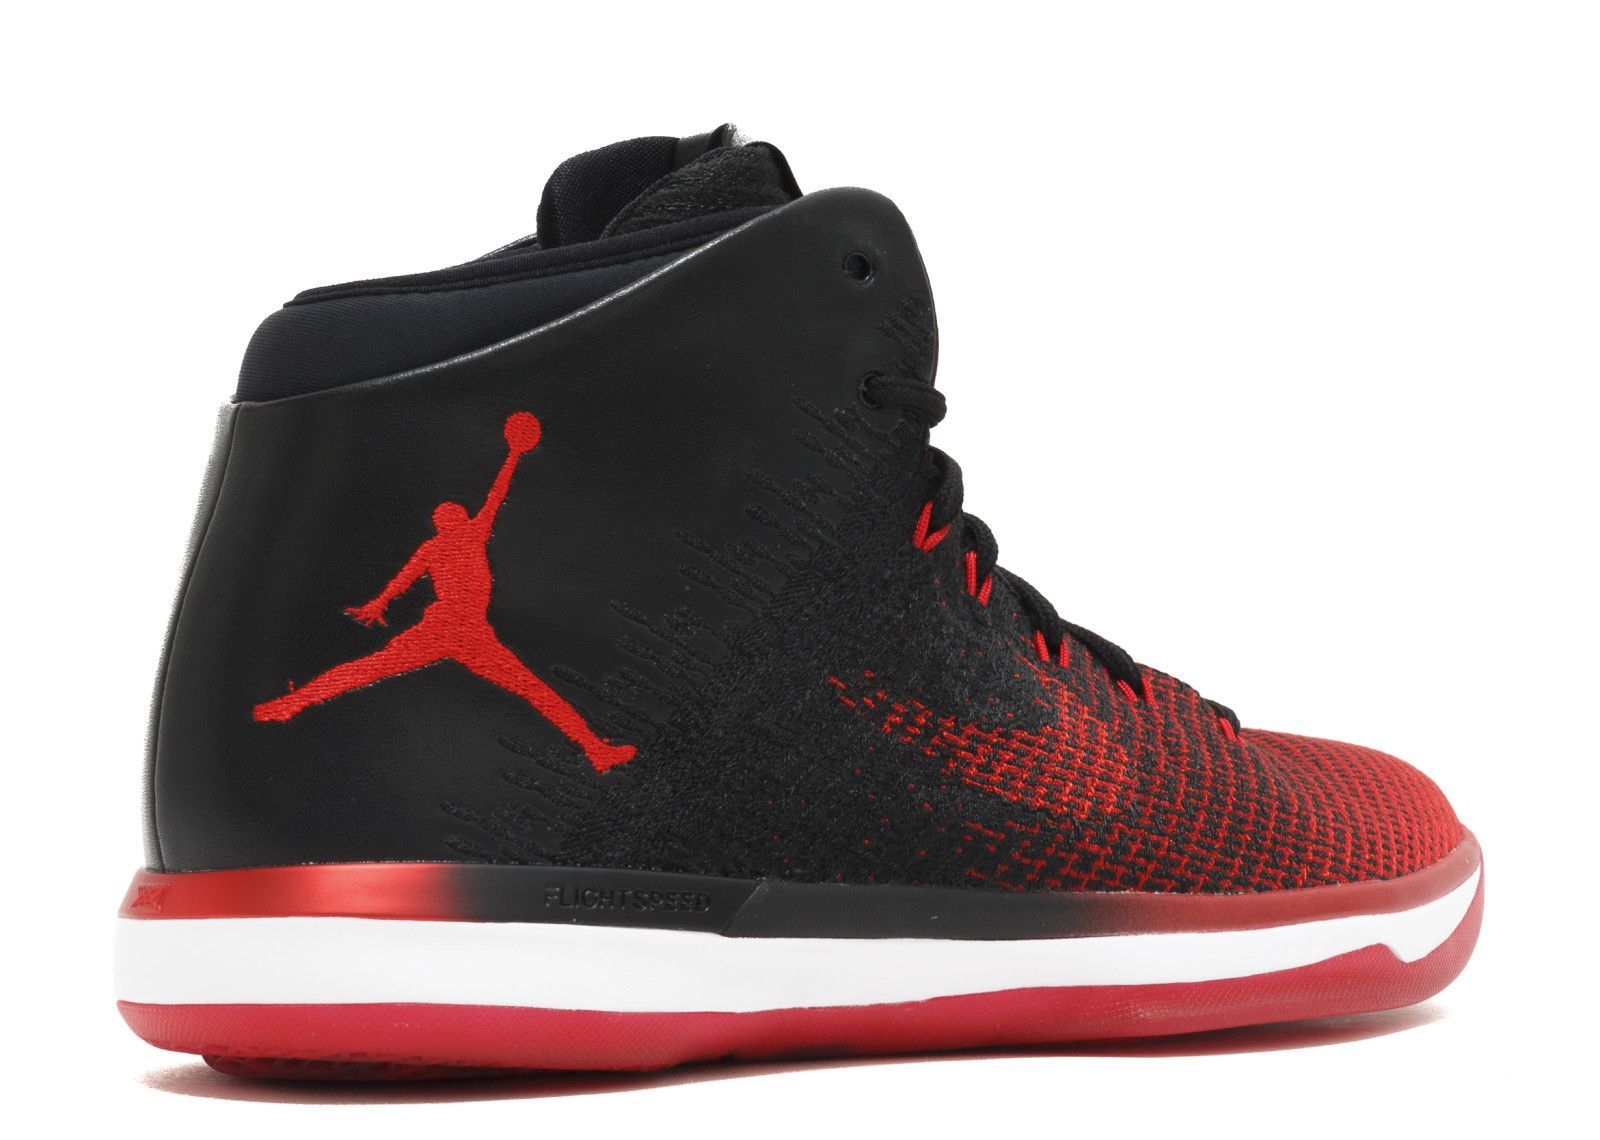 Nike Basketball Shoes Discount India